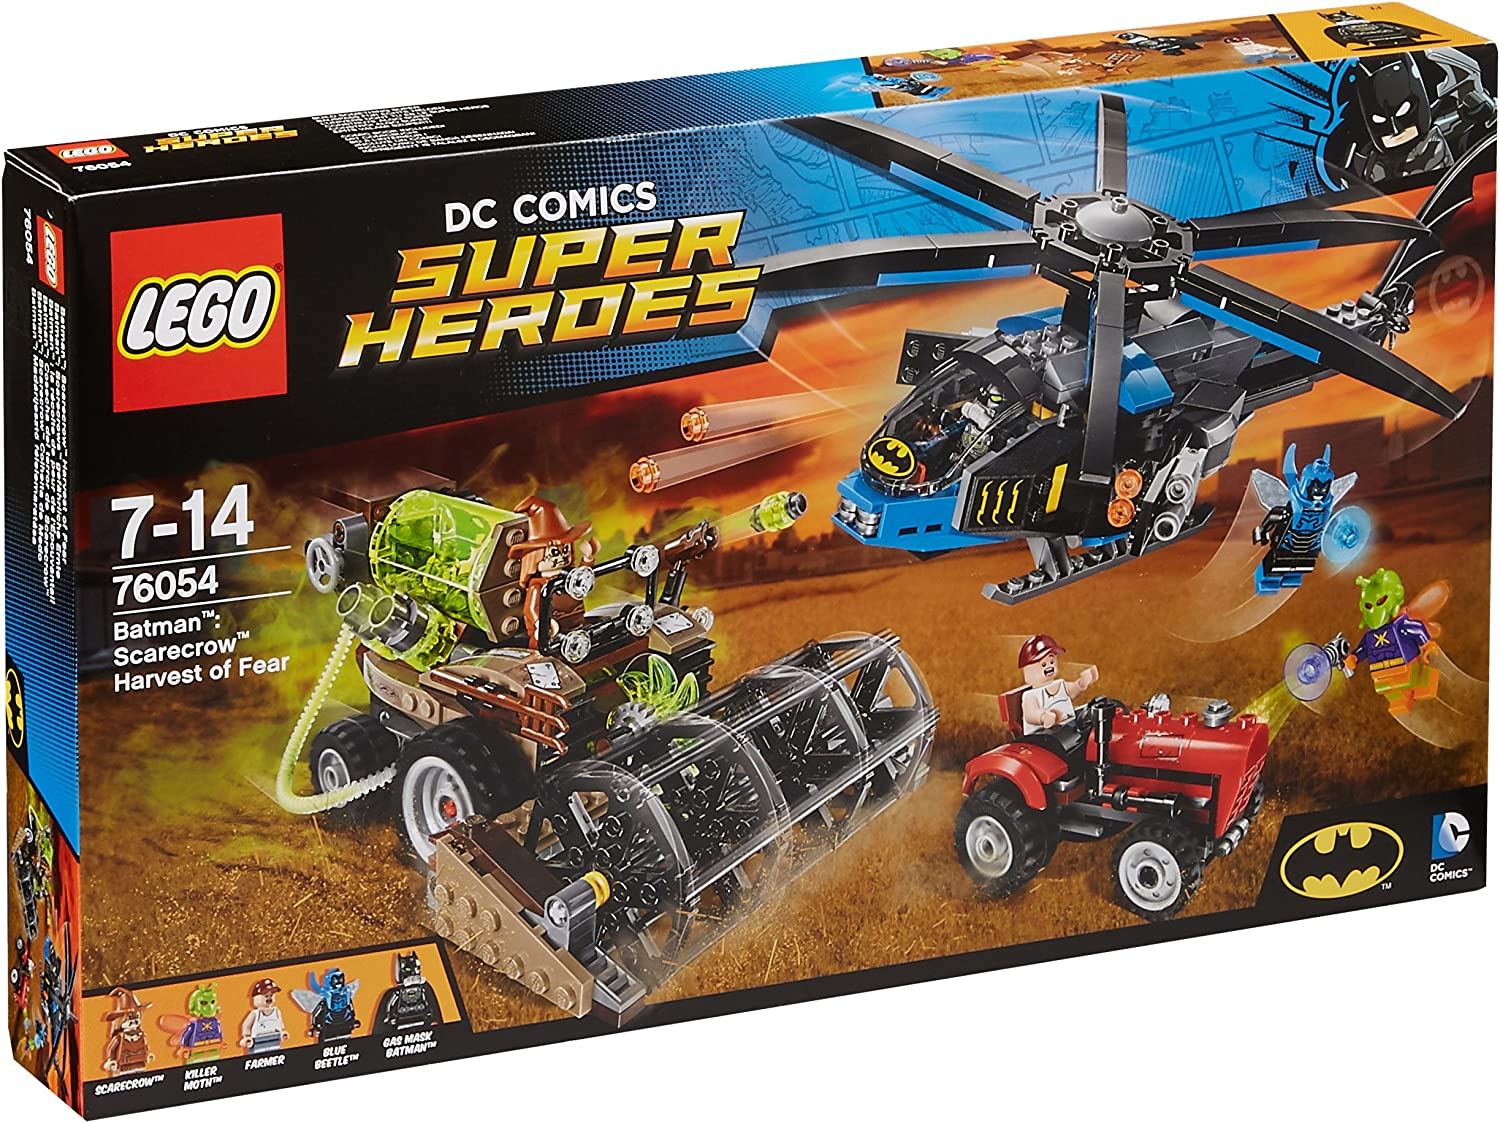 LEGO 76054 DC Comics Super Heroes Batman Scarecrow Harvest of Fear Superhero Toy